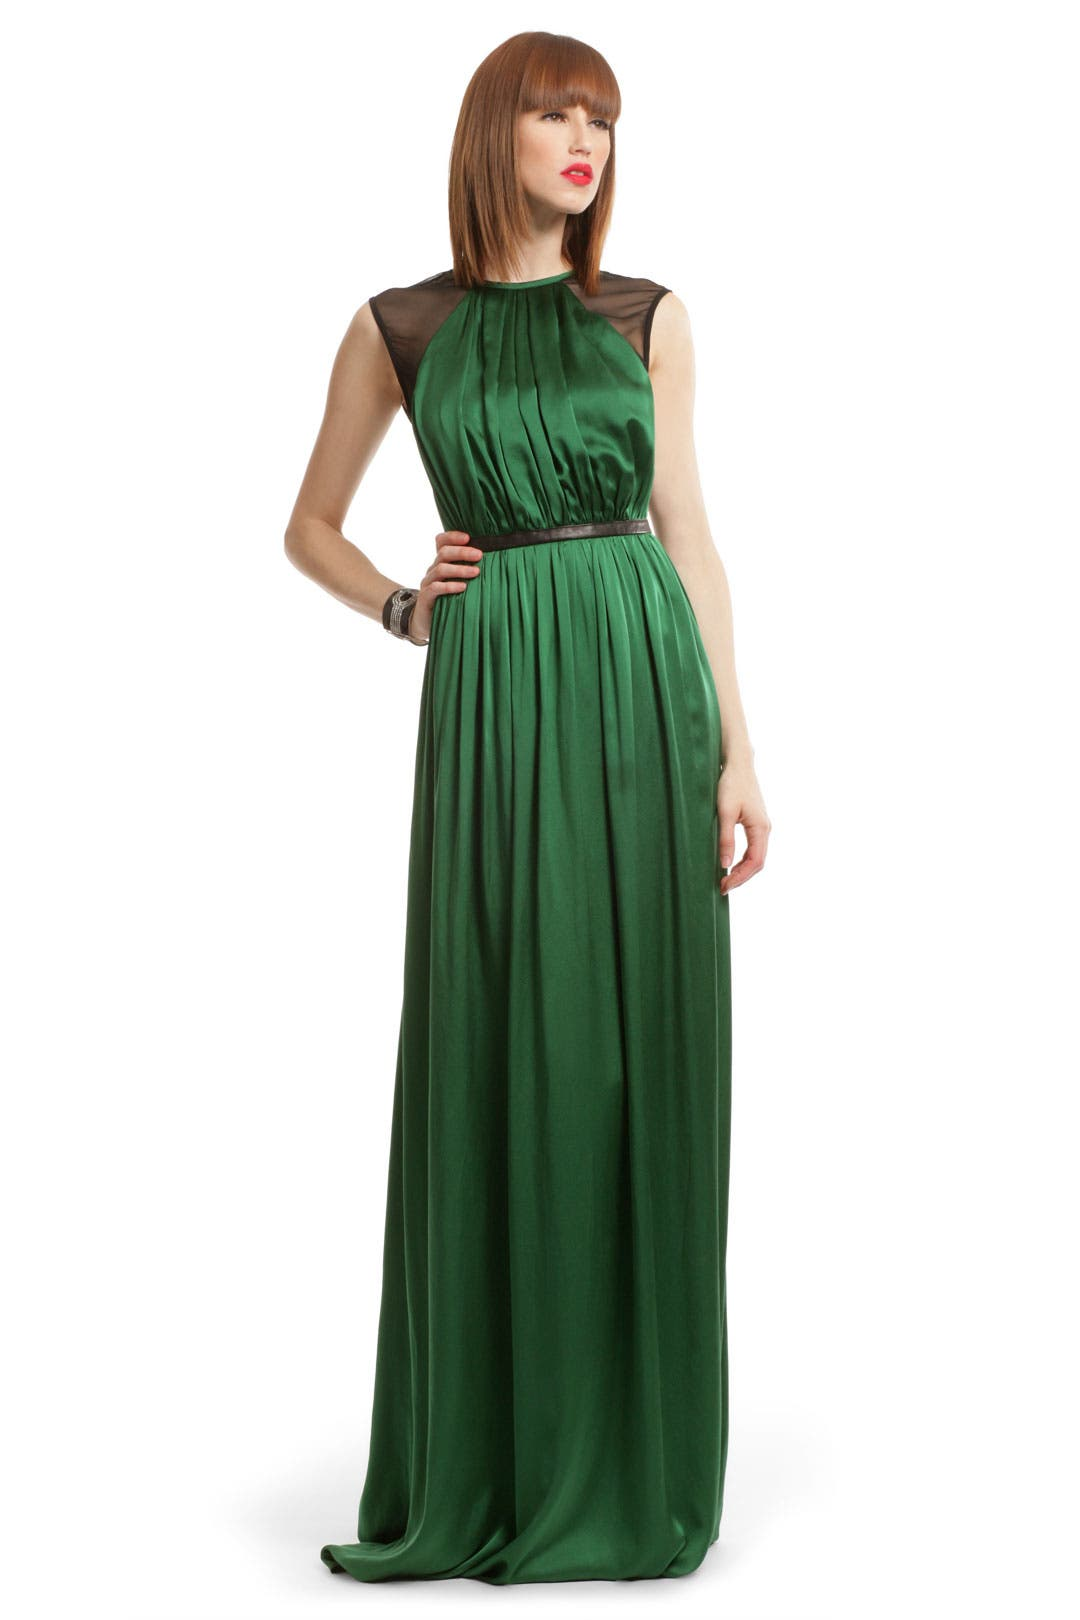 Green Satin Charm Gown by Yigal Azrouël